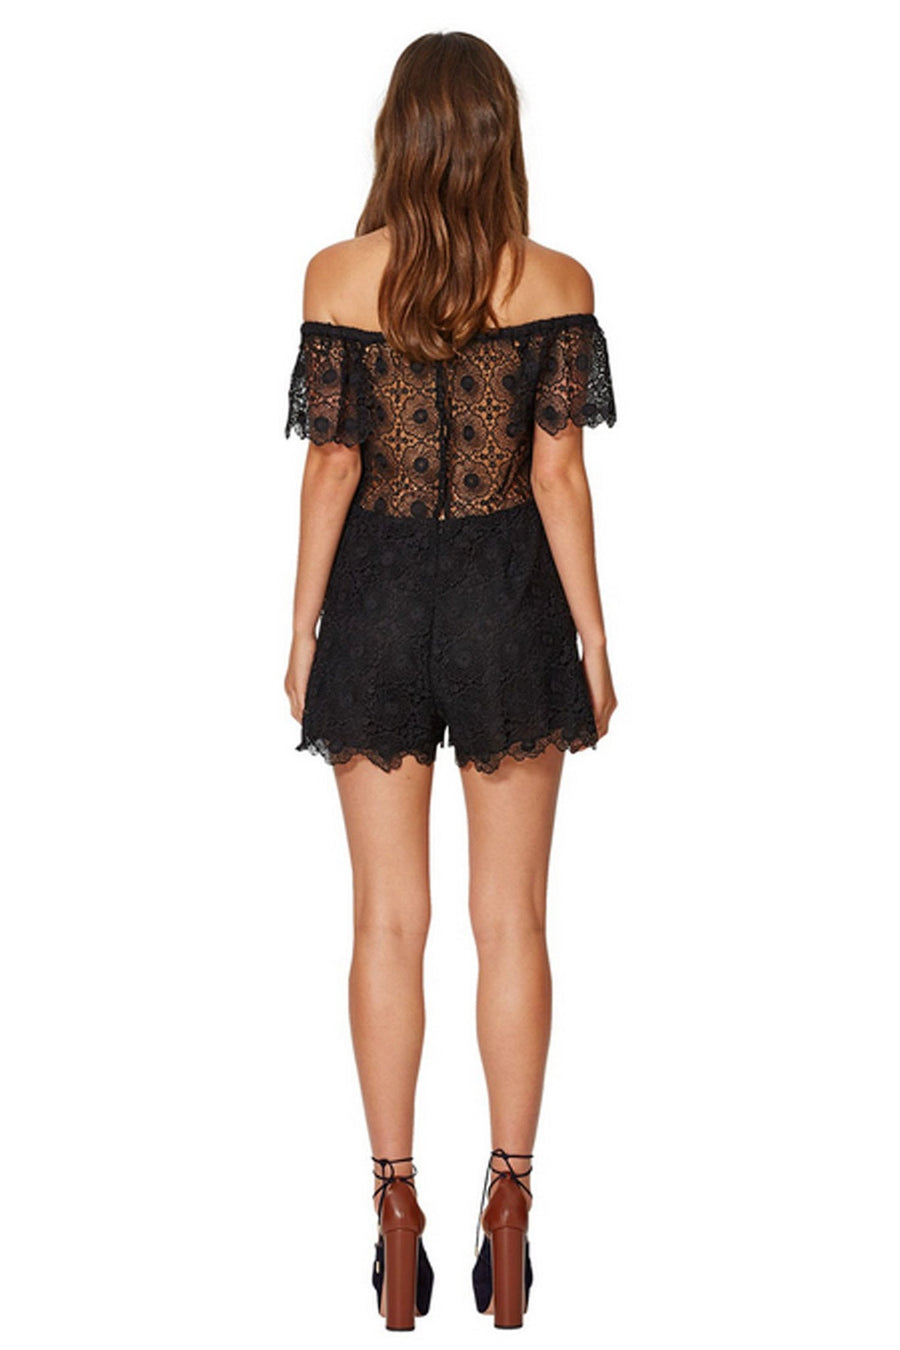 daisy-chain-playsuit-by-bec-and-bridge